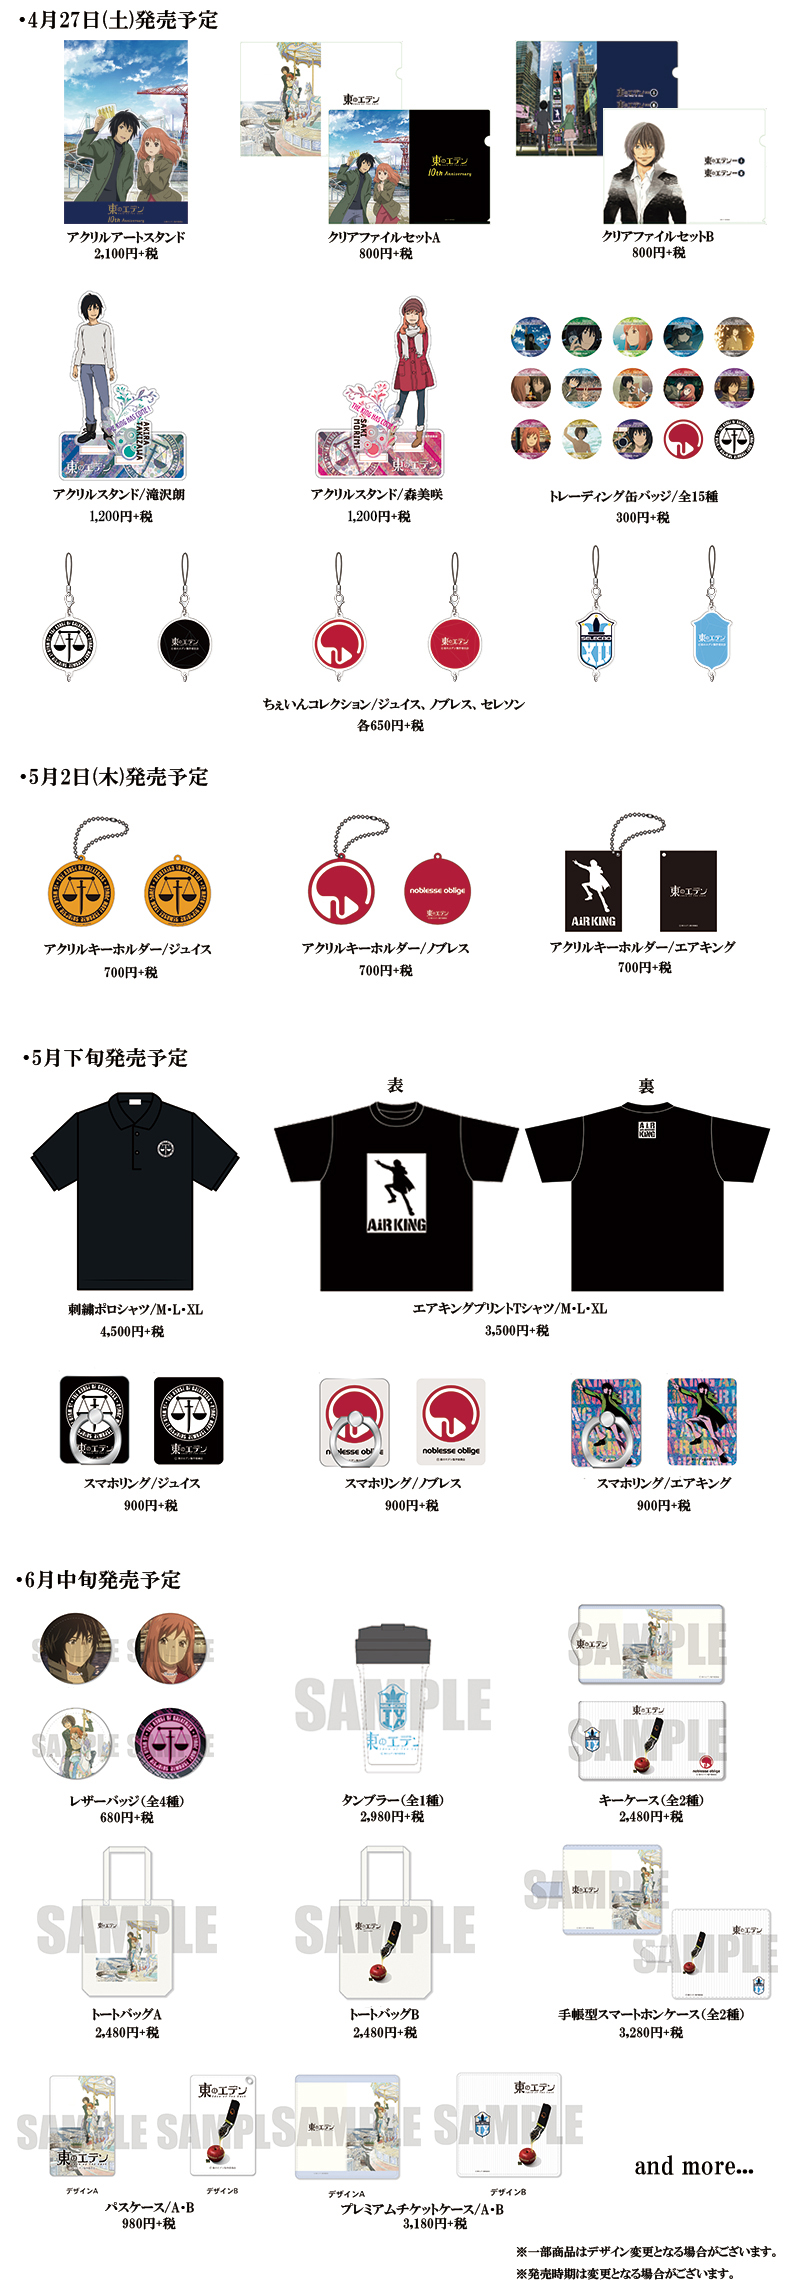 http://www.noitamina-shop.com/image/eden/10th-goods2.jpg